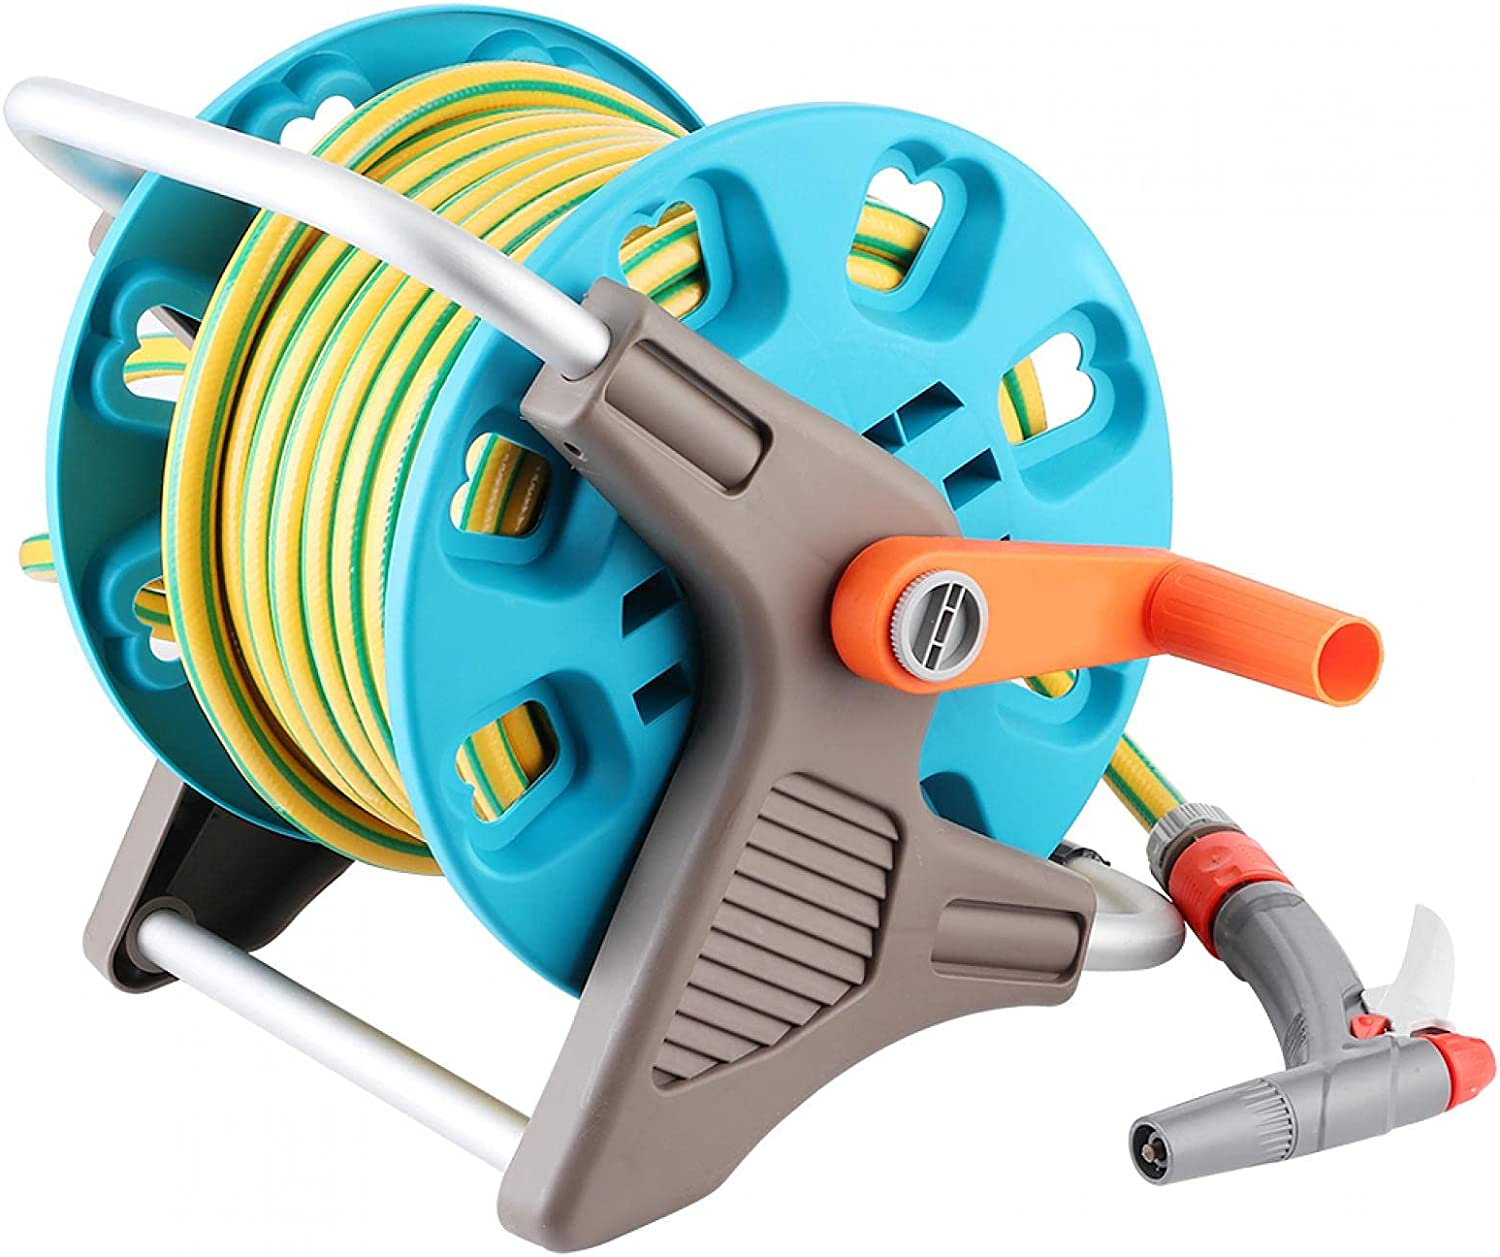 Garden Supplies Water Time sale Hose Sprayer Expandable Reel Nippon regular agency Durable